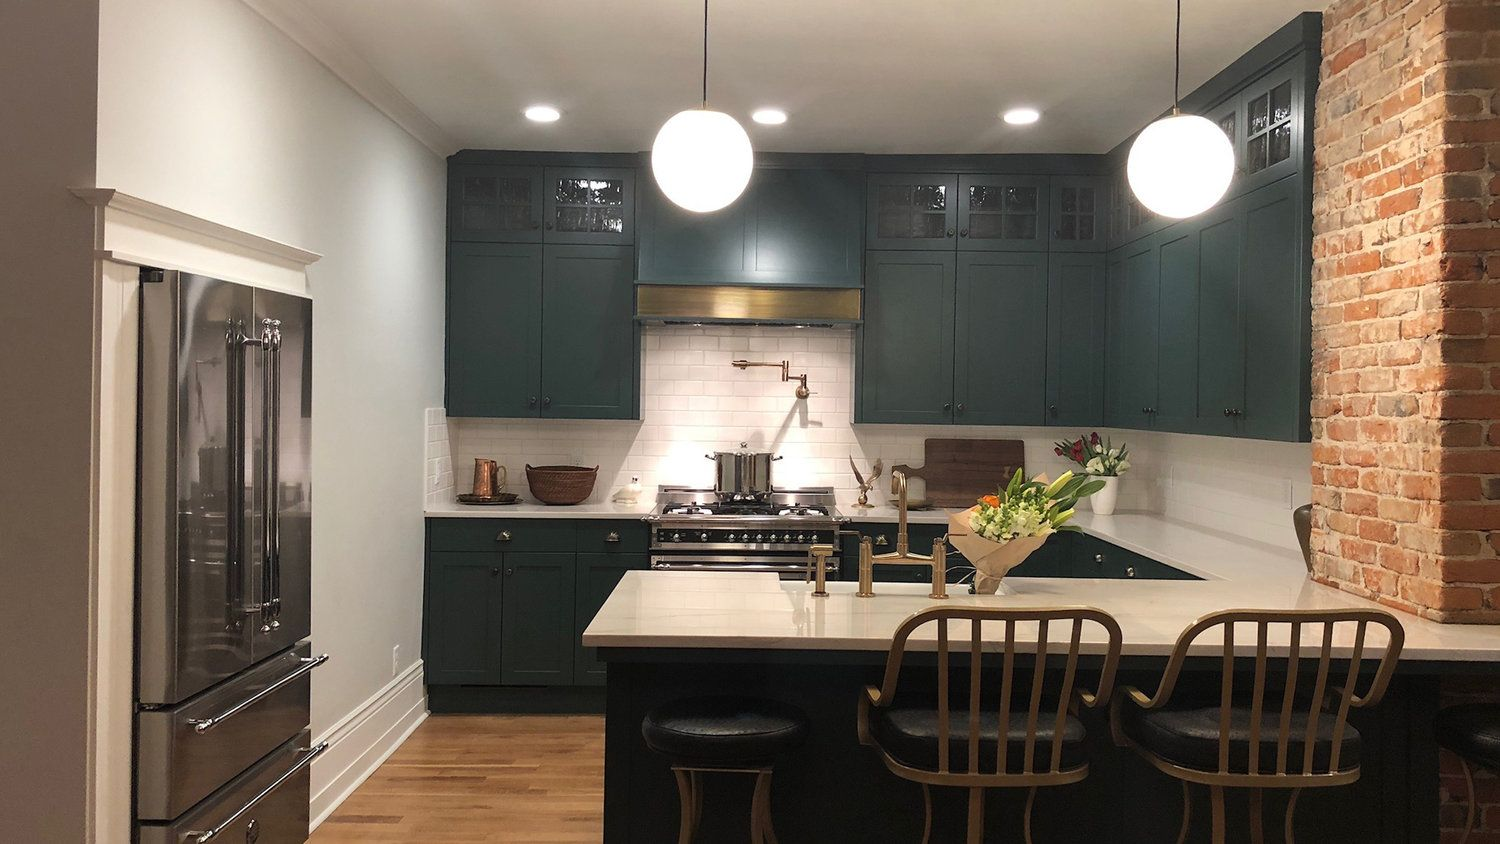 Timber And Love Design And Build Blog Boise Boys S01 E03 The Porch House Boise Boys Hgtv Kitchens Kitchen Inspirations